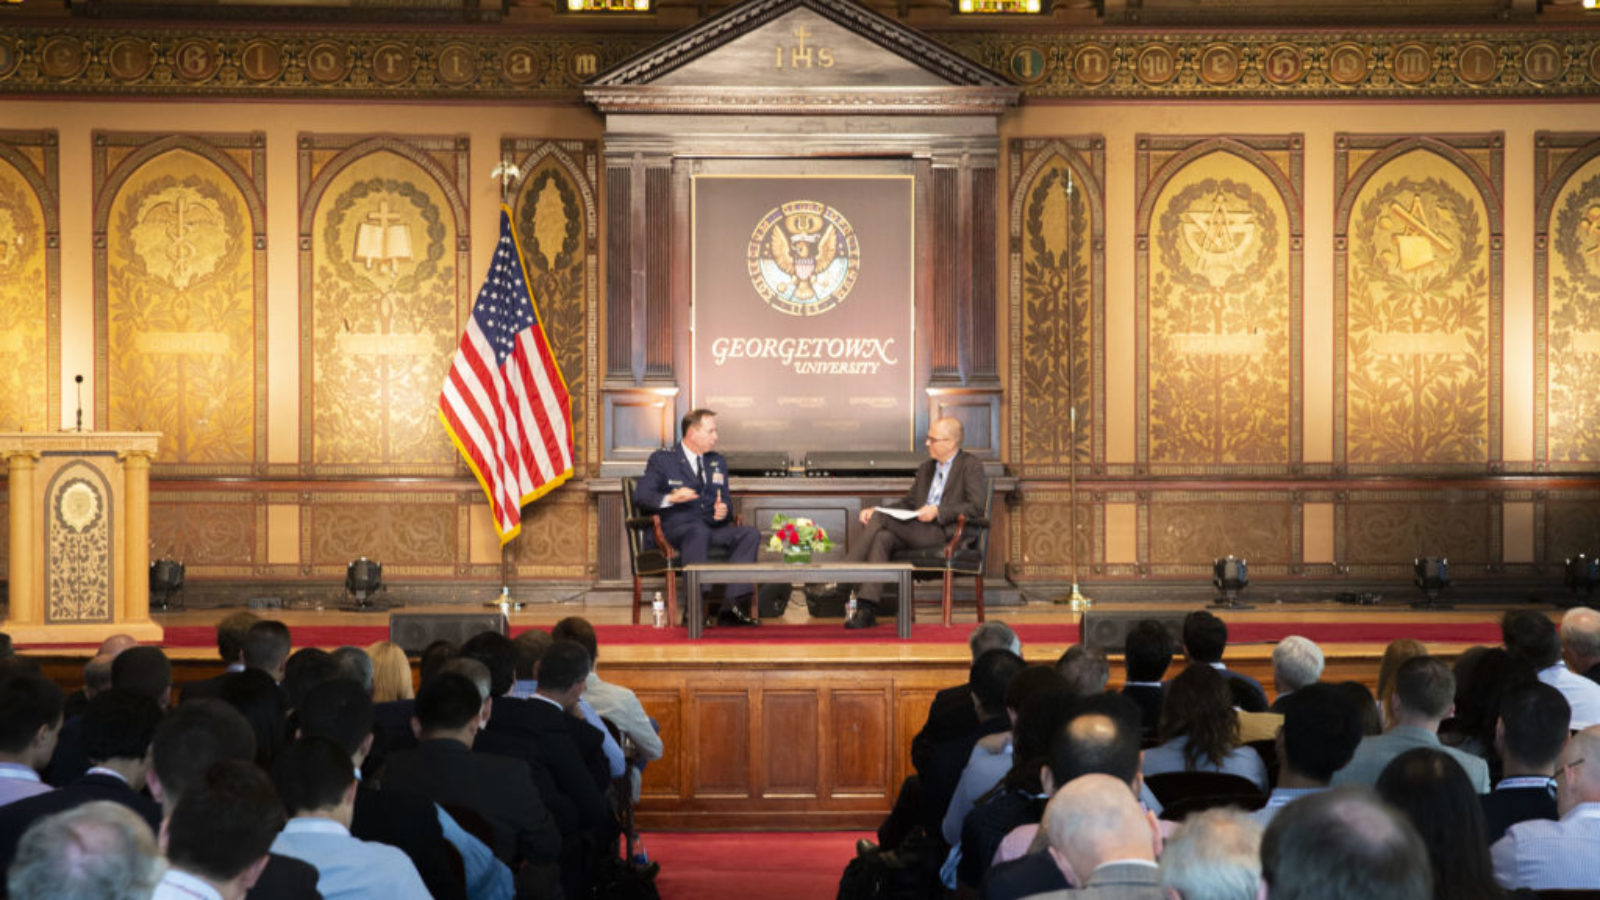 General Jack Shanahan, Director of the DoD Joint Artificial Intelligence Center, and Jason Matheny, Director of CSET, discussed the foundation of the Joint Artificial Intelligence Center at the Kalaris Intelligence Conference on September 25, 2019.